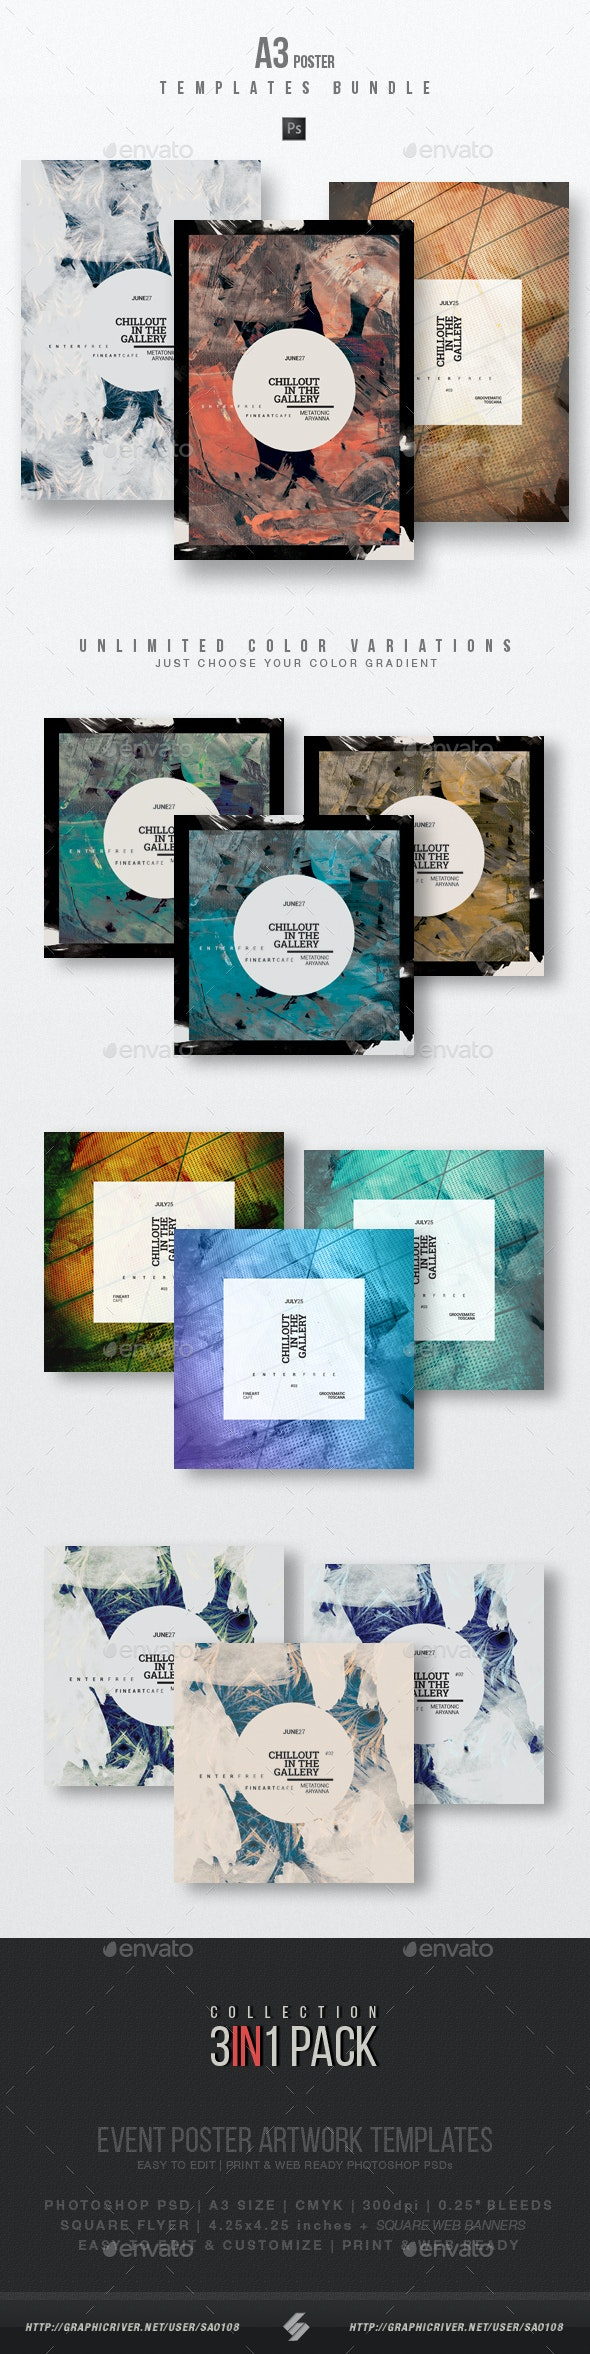 Chillout Session vol.3 - Party Flyer / Poster Templates Bundle - Clubs & Parties Events